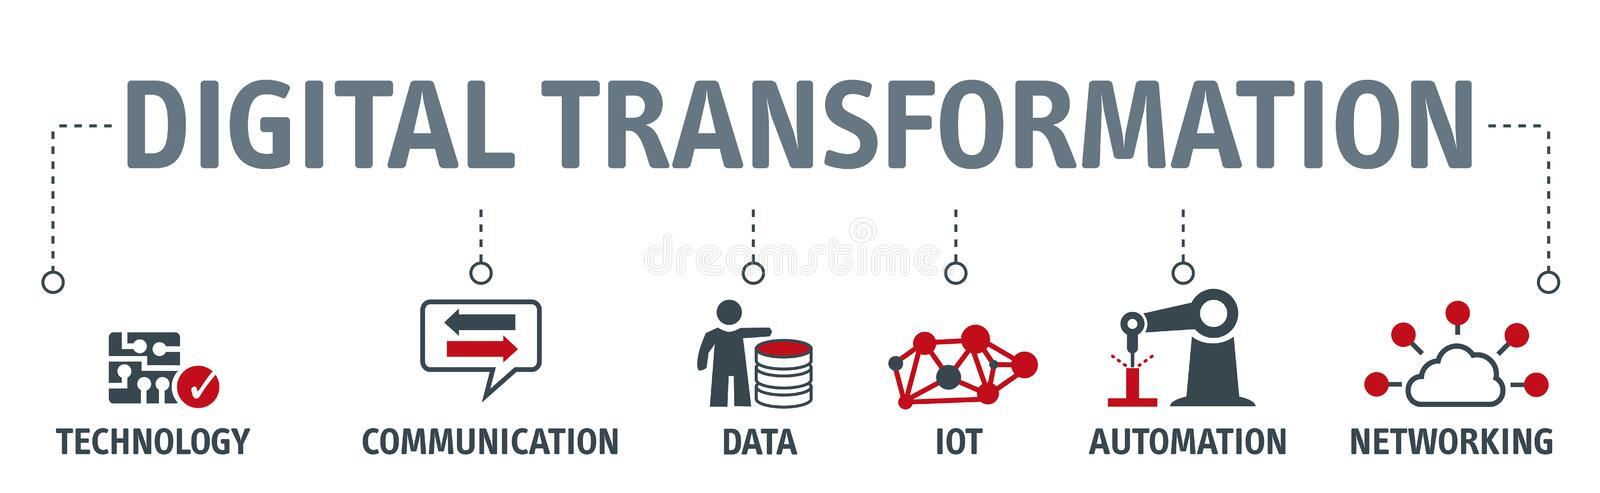 Banner digital transformation vector illustration Concept. Banner digitilization concept as vector illustration with keywords and icons stock illustration